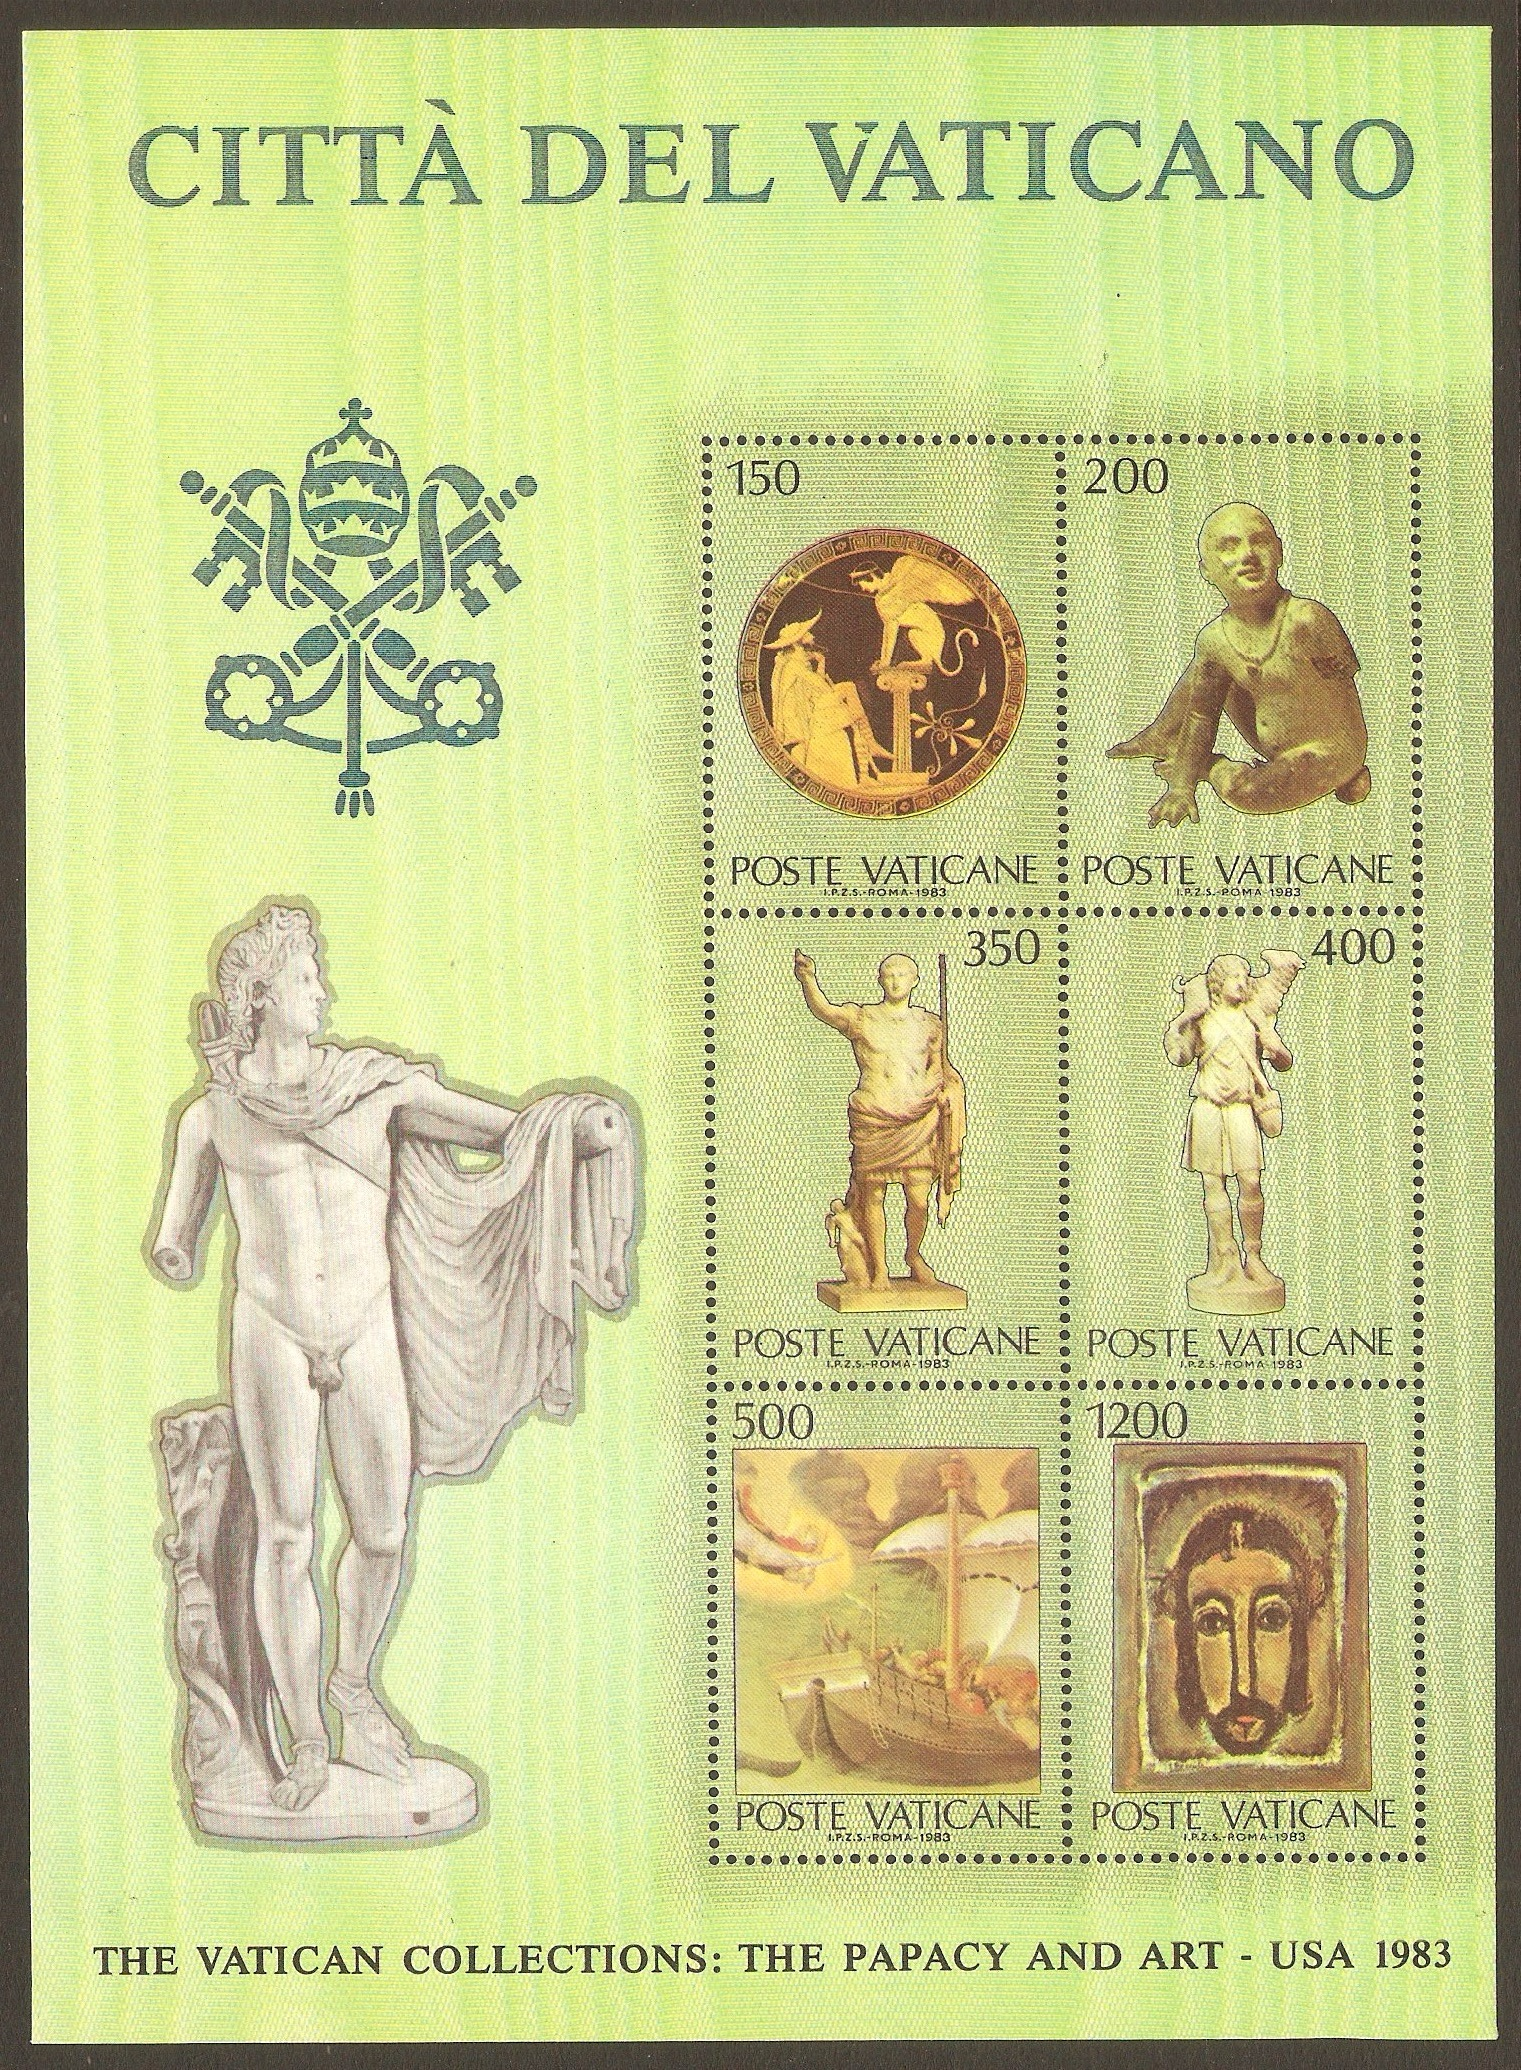 Vatican City 1983 Vatican Collections sheet (3rd. Iss). SGMS803.